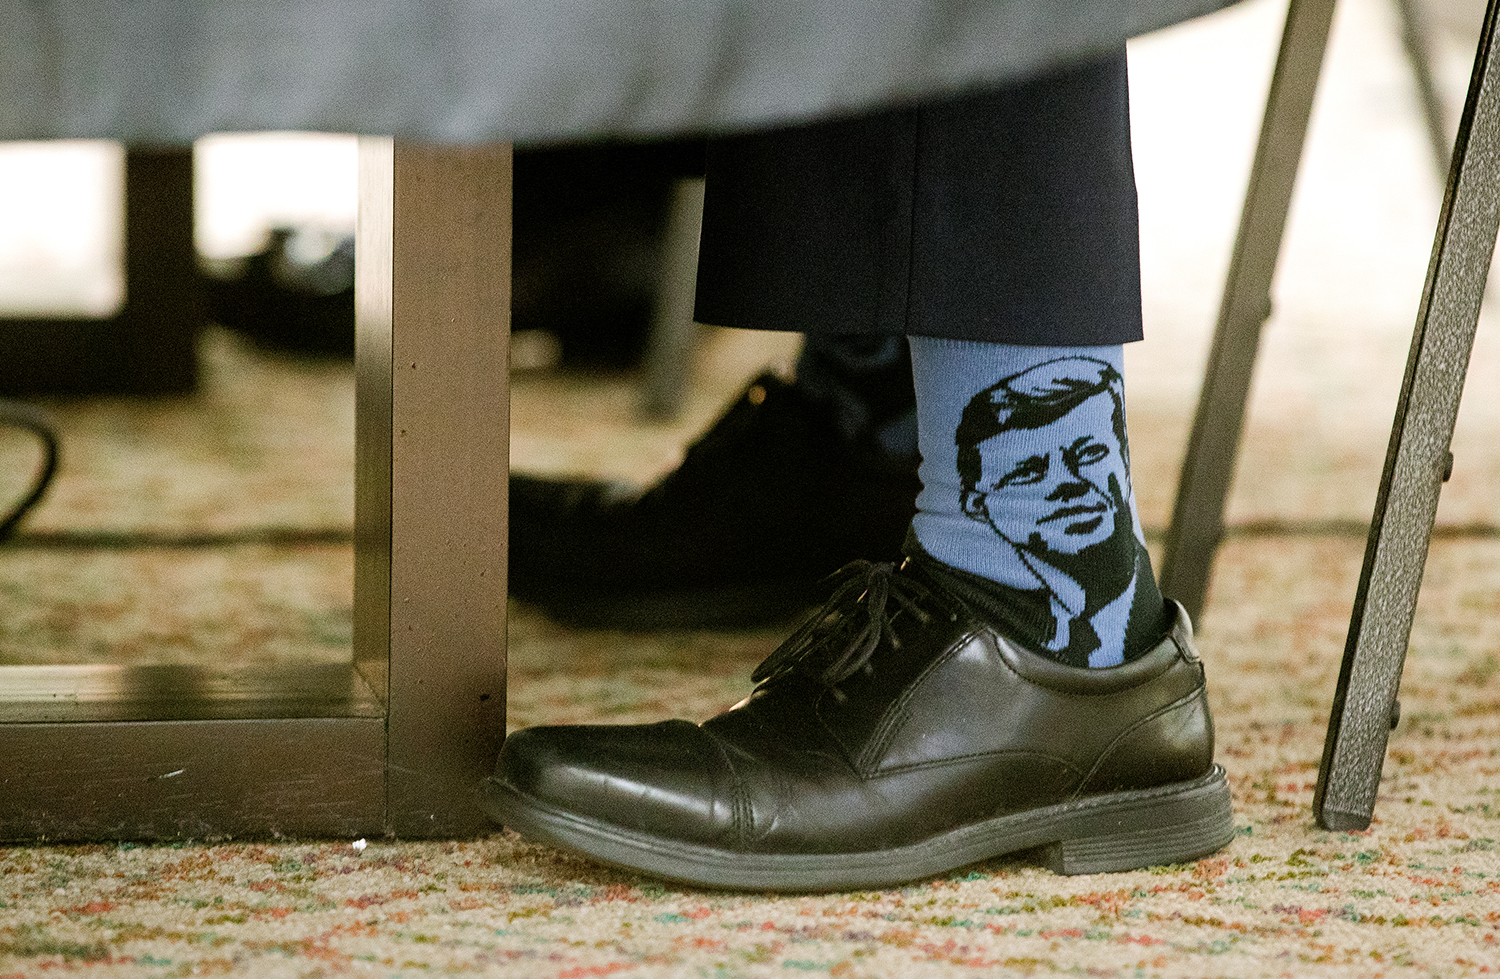 Springfield mayor Jim Langfelder sports a pair of socks with a likeness of President John F. Kennedy during a debate with Frank Edwards at the State Journal-Register Monday, March 11, 2019. [Ted Schurter/The State Journal-Register]